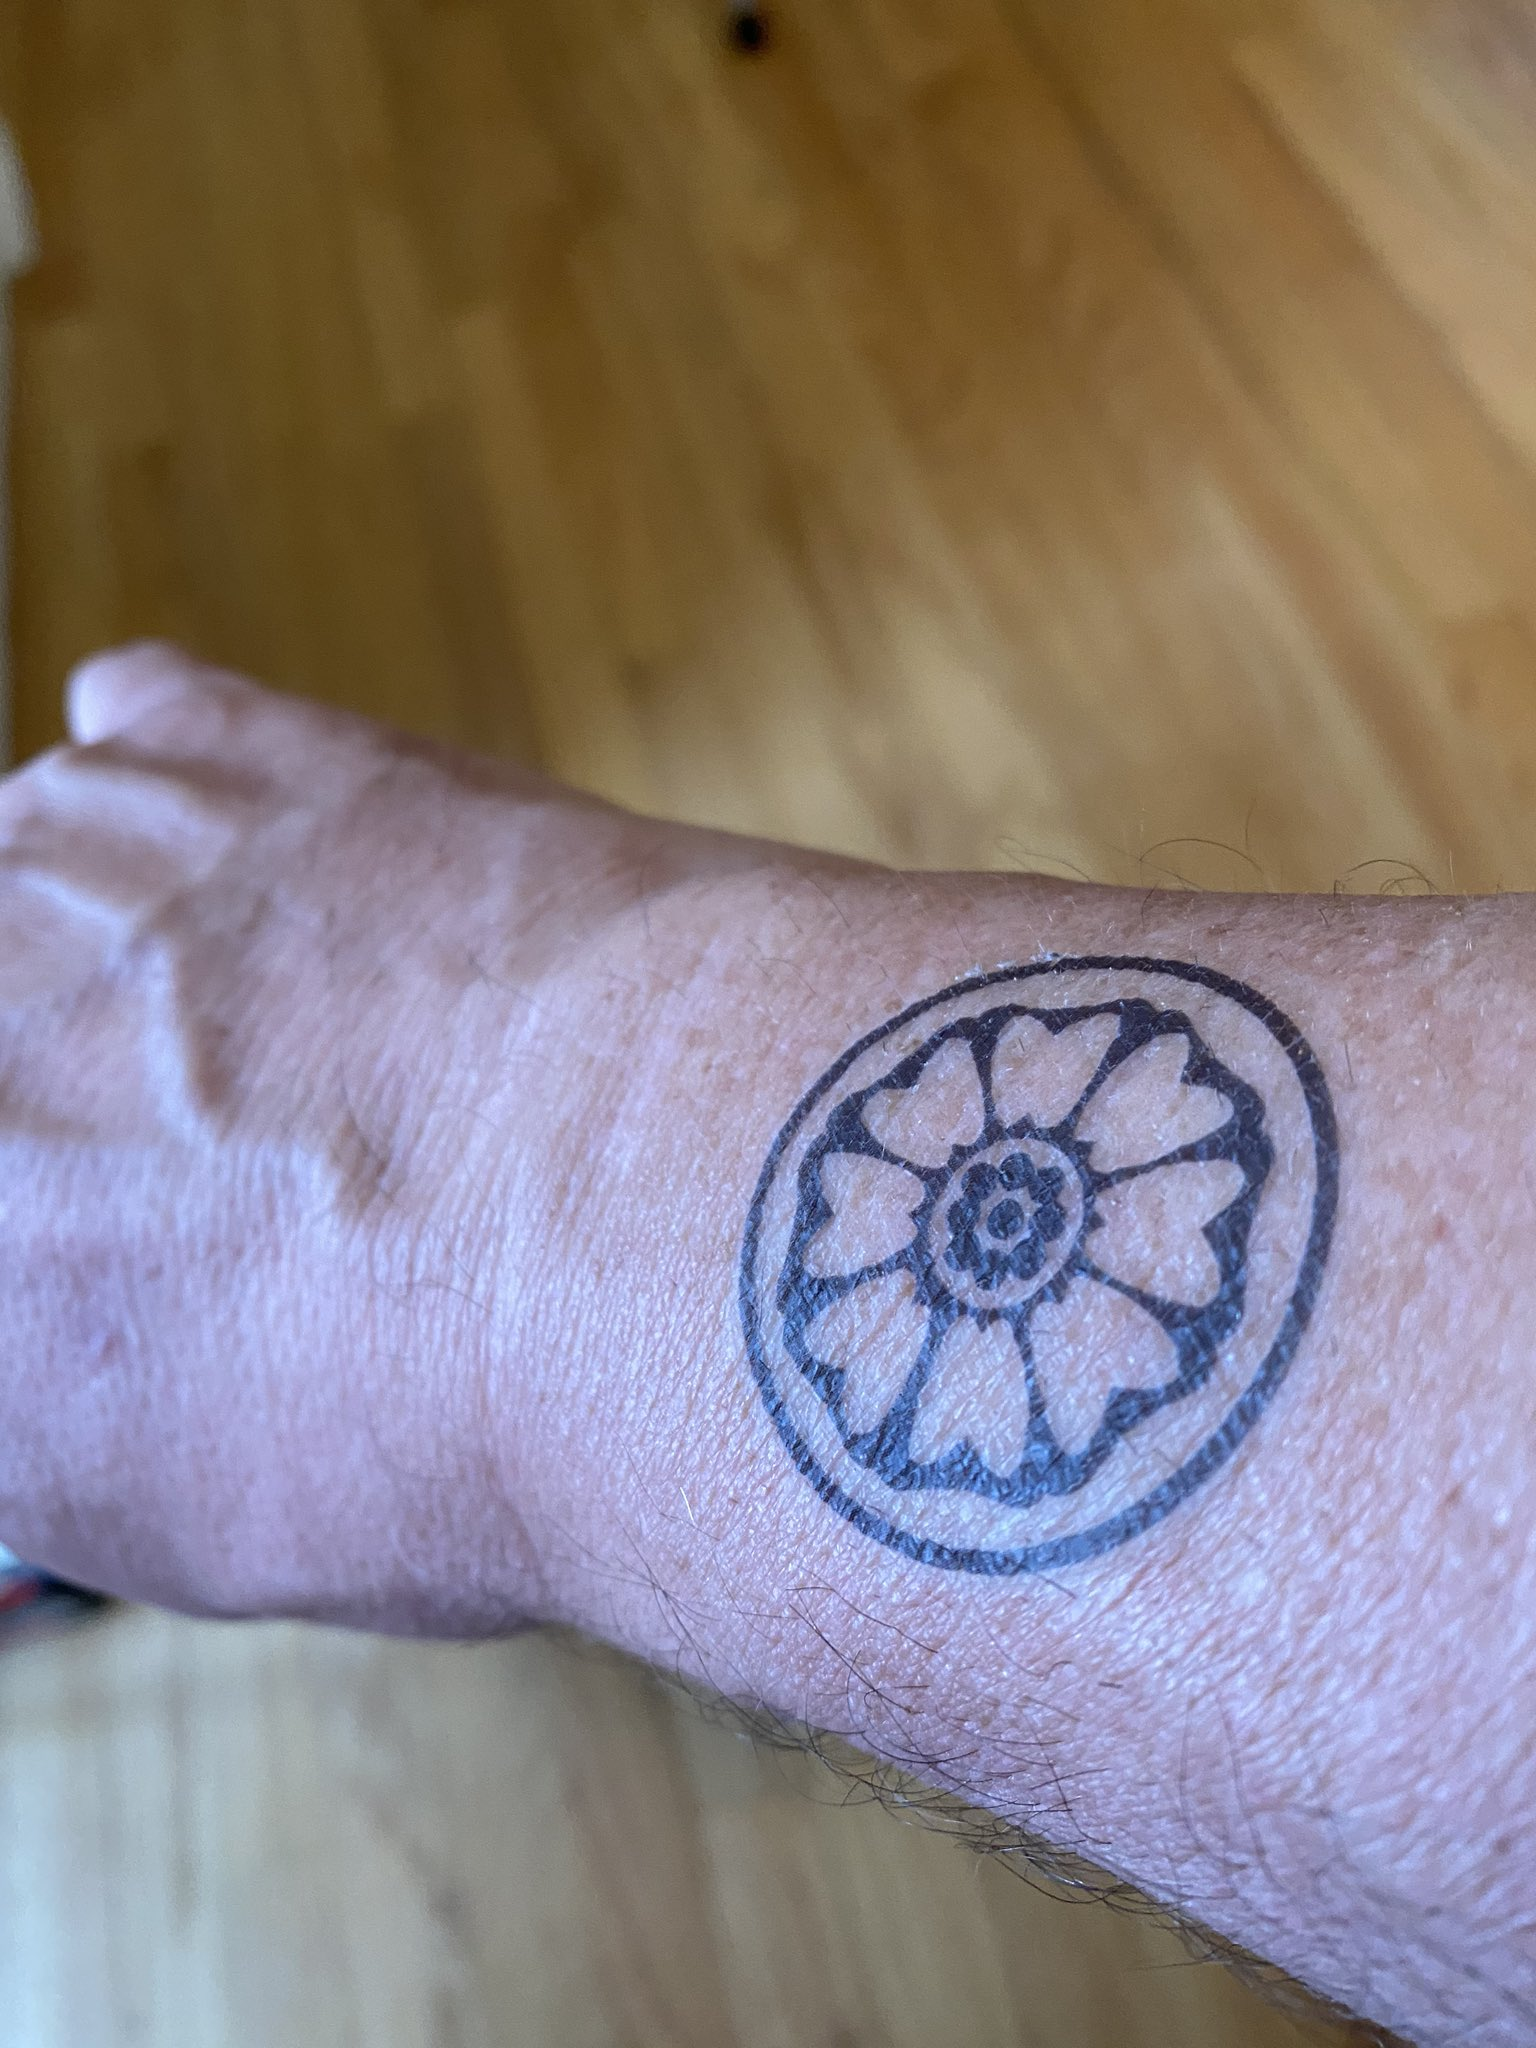 Greg Baldwin On Twitter I M Not A Tattoo Guy But This Seemed Right I Look At It And Am Reminded Of What Iroh And His Order Represent What I Should Strive To Represent